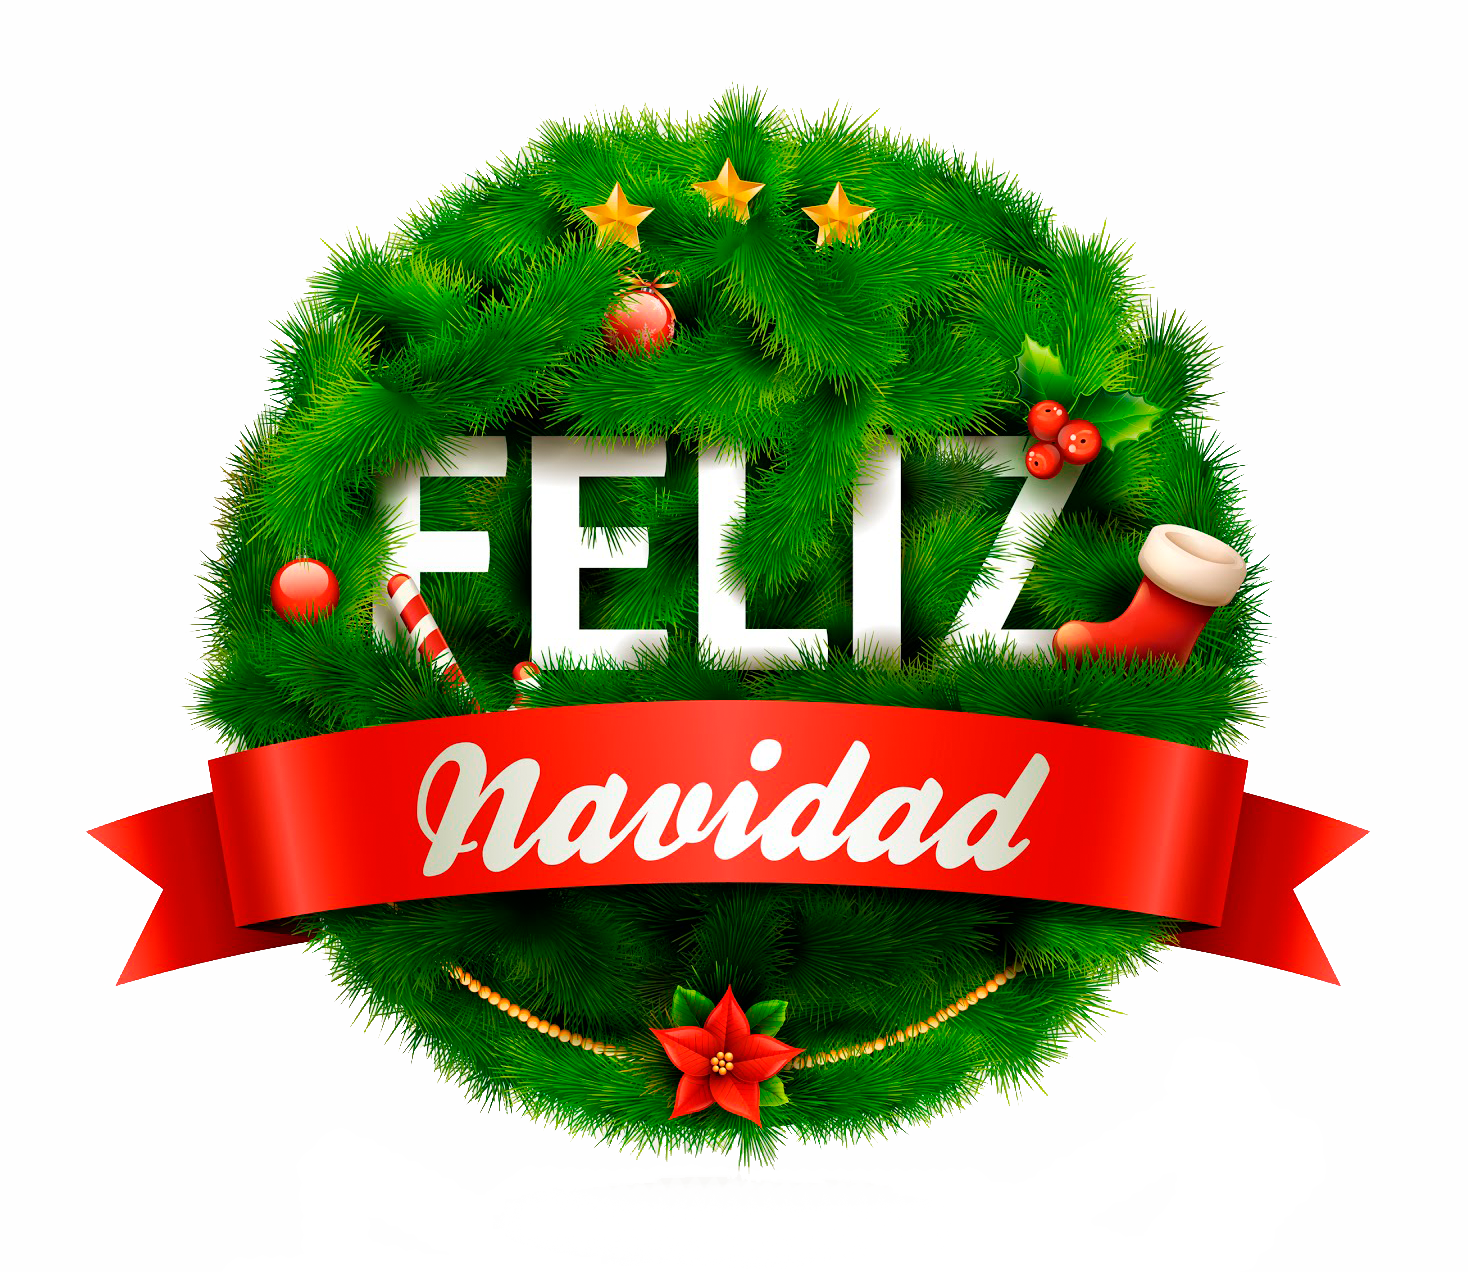 Feliz y pr spero. Navidad 2016 png png royalty free download